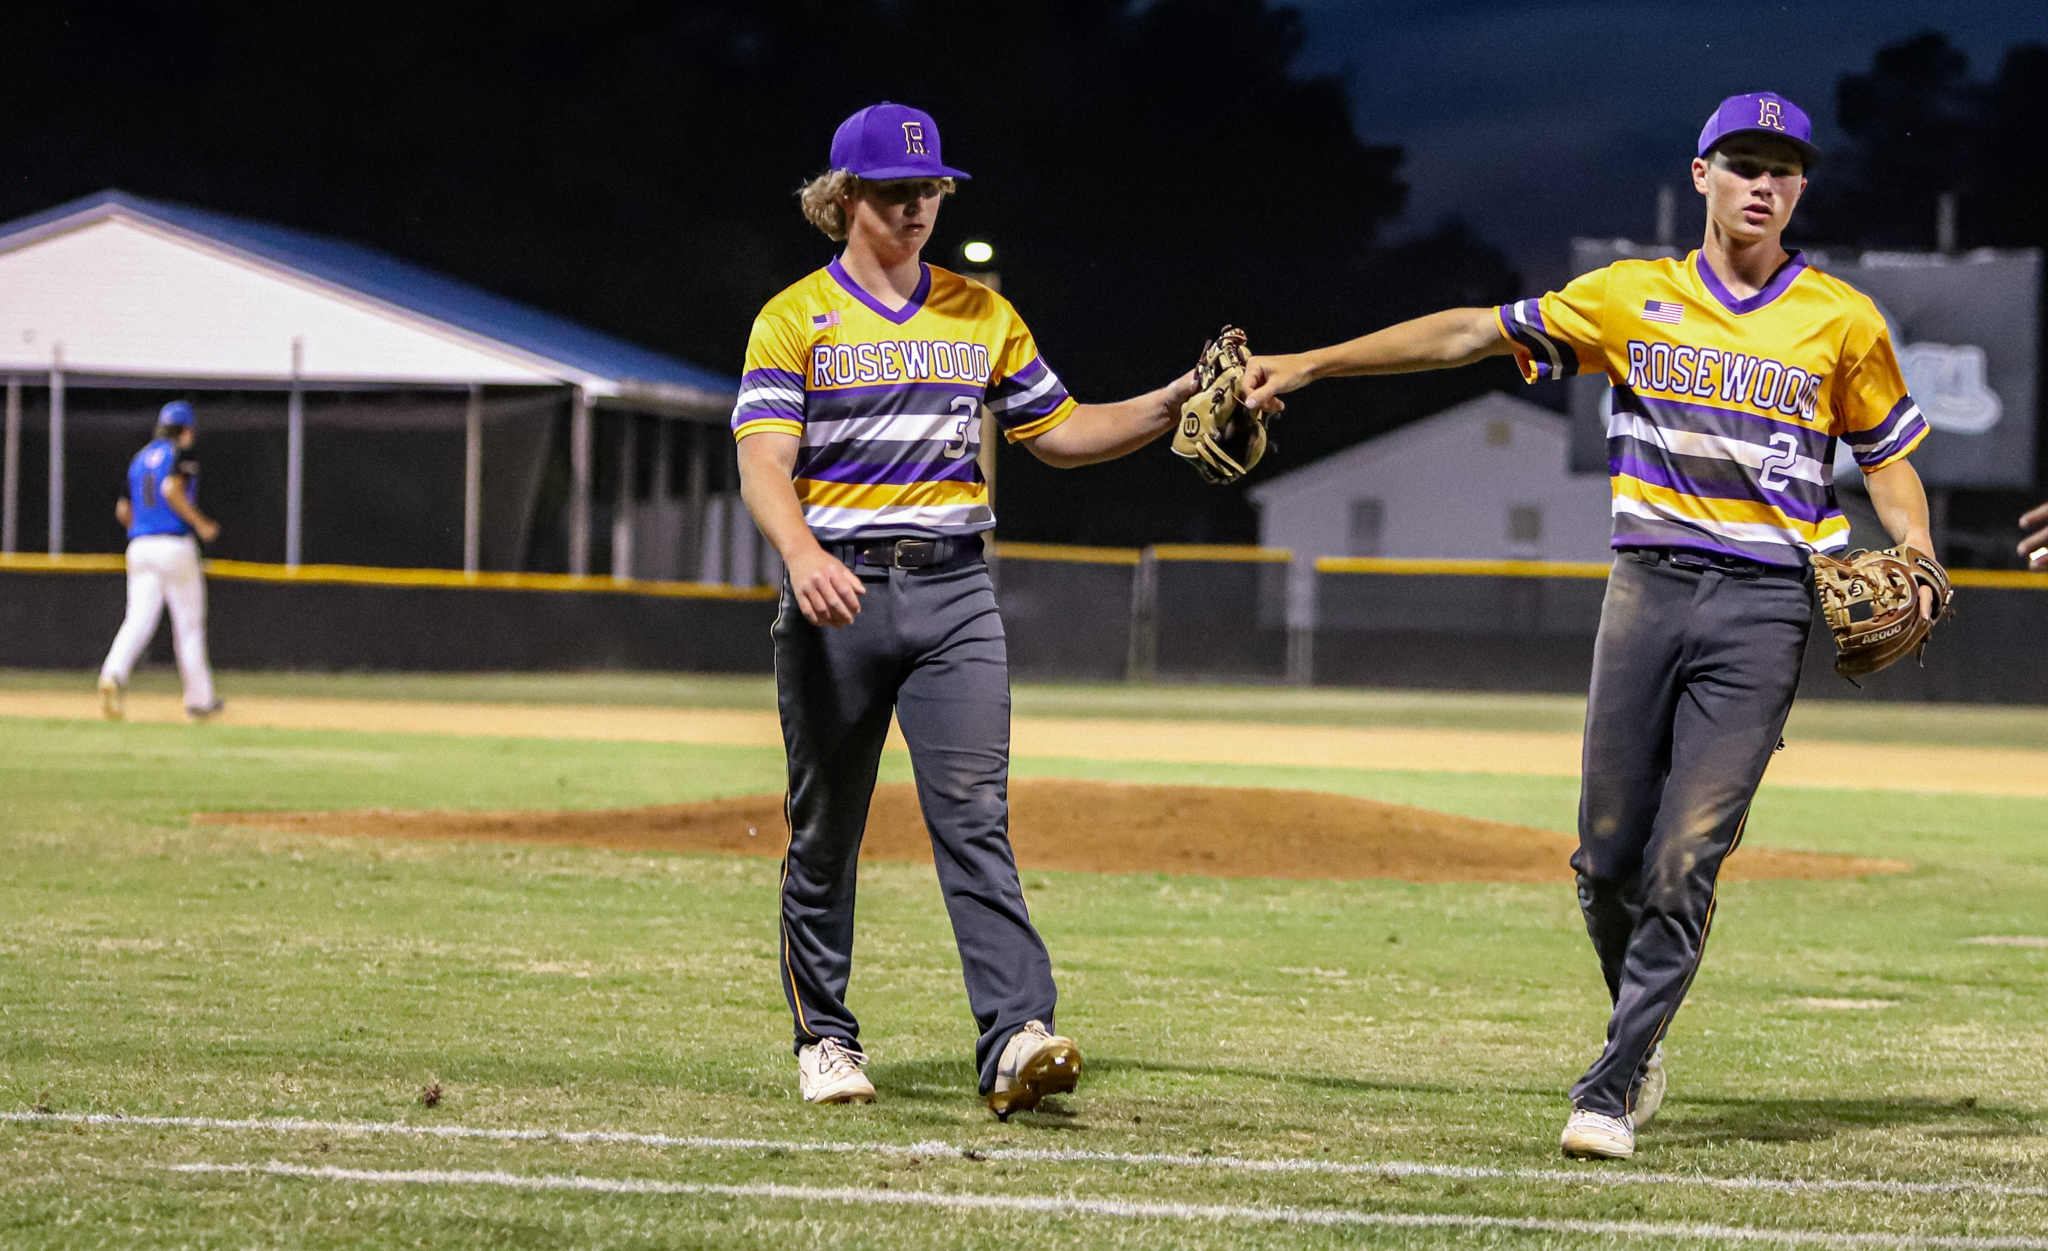 Baseball: Rosewood Holds Off Princeton In Extra Innings (PHOTO GALLERY)